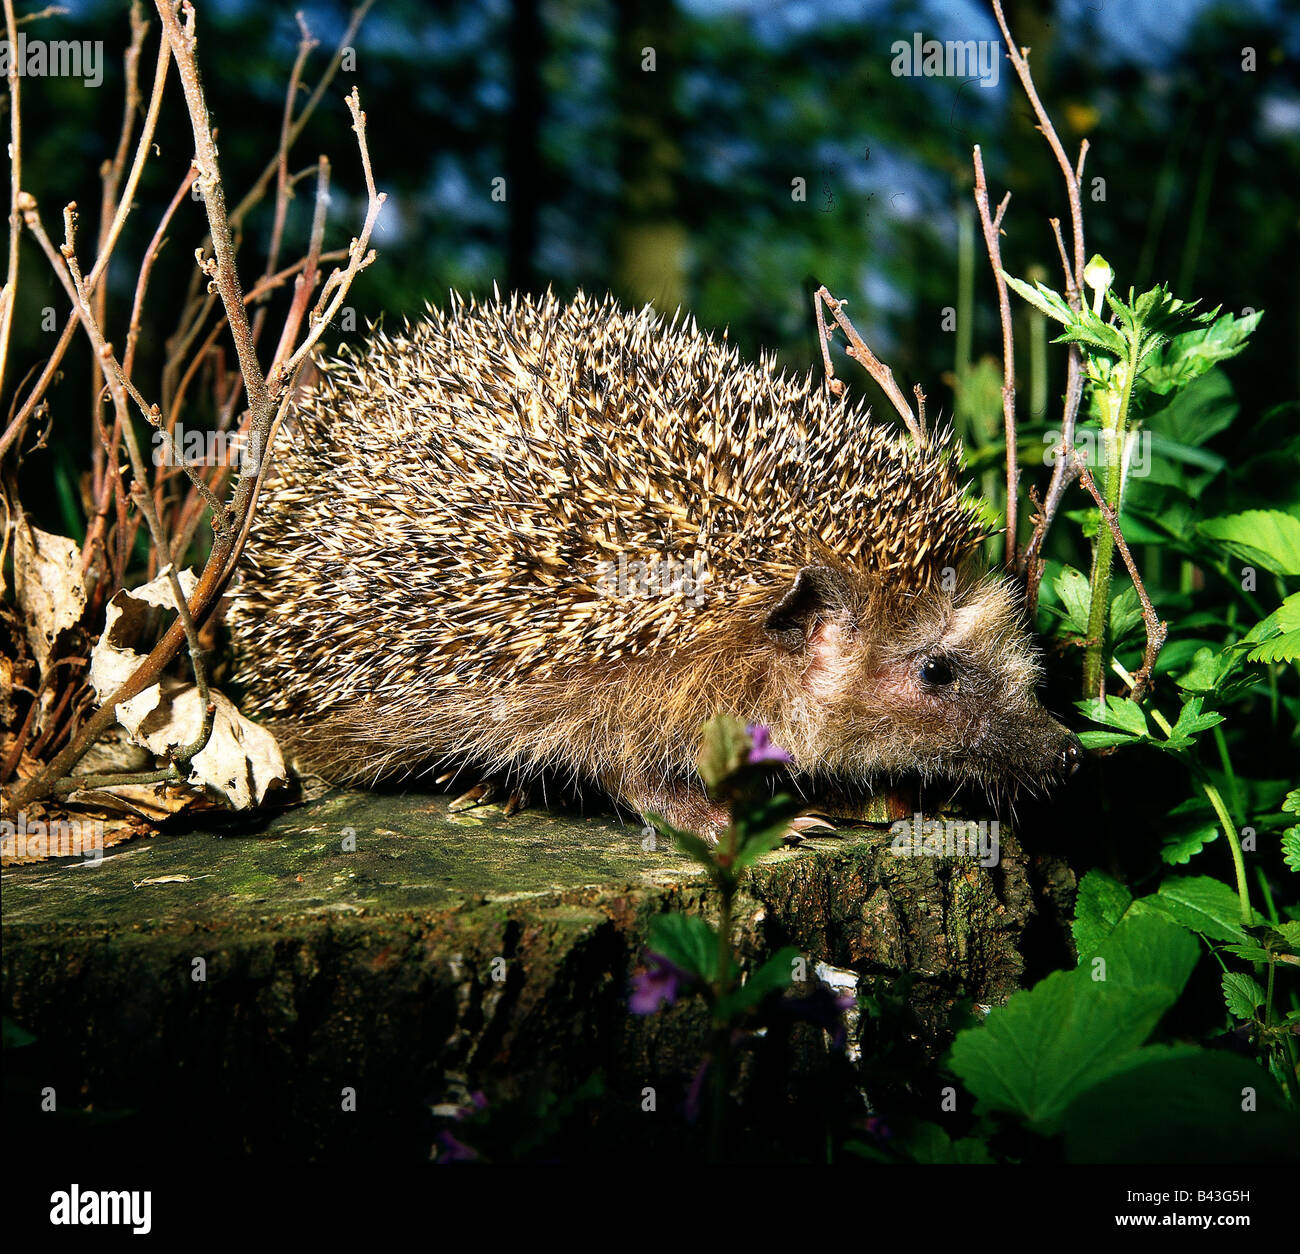 zoology animals mammal mammalian hedgehog erinaceus stock